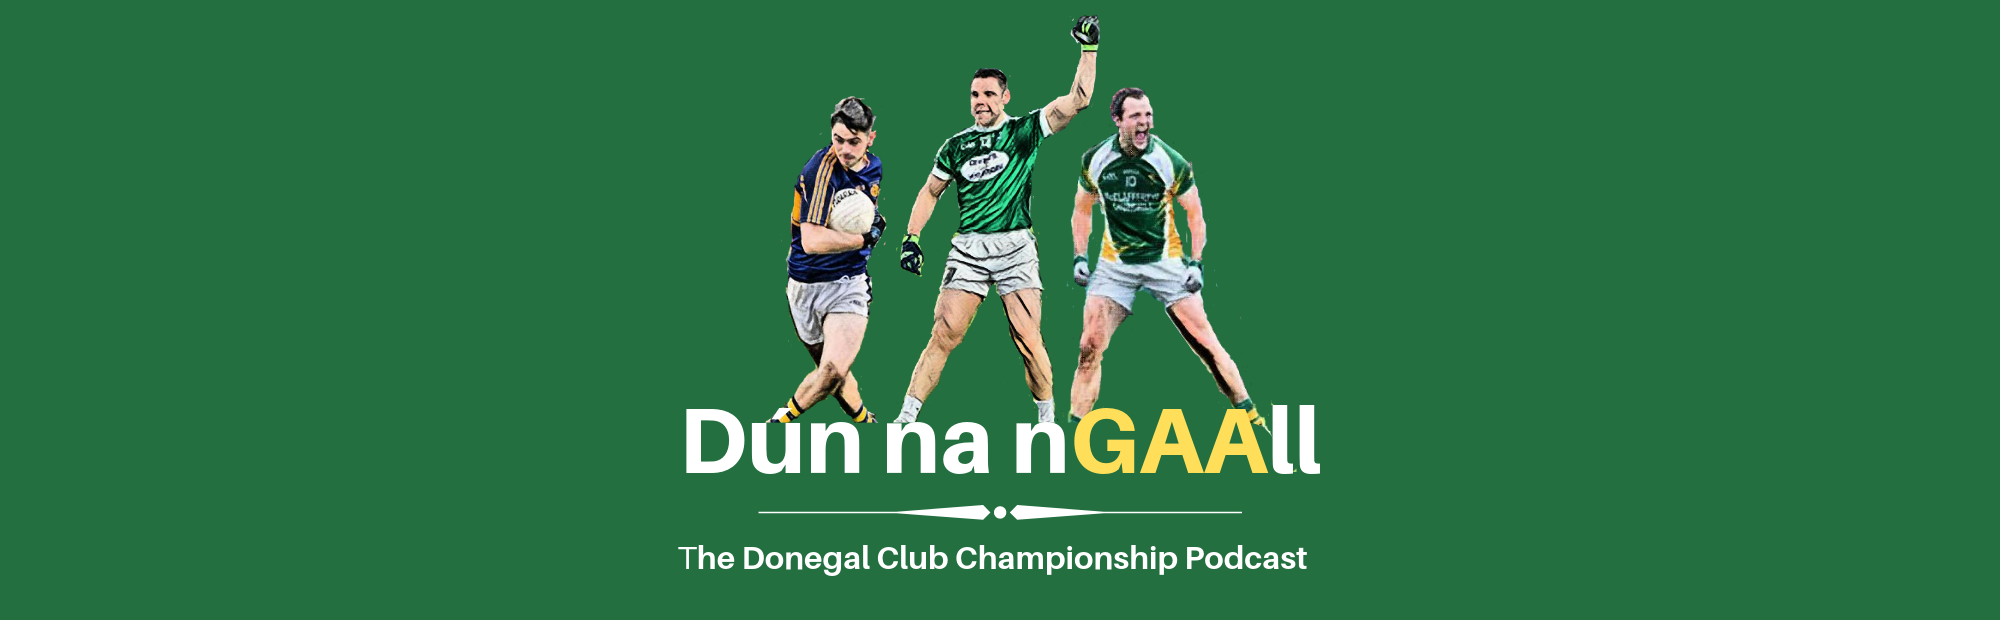 Donegal GAA podcast